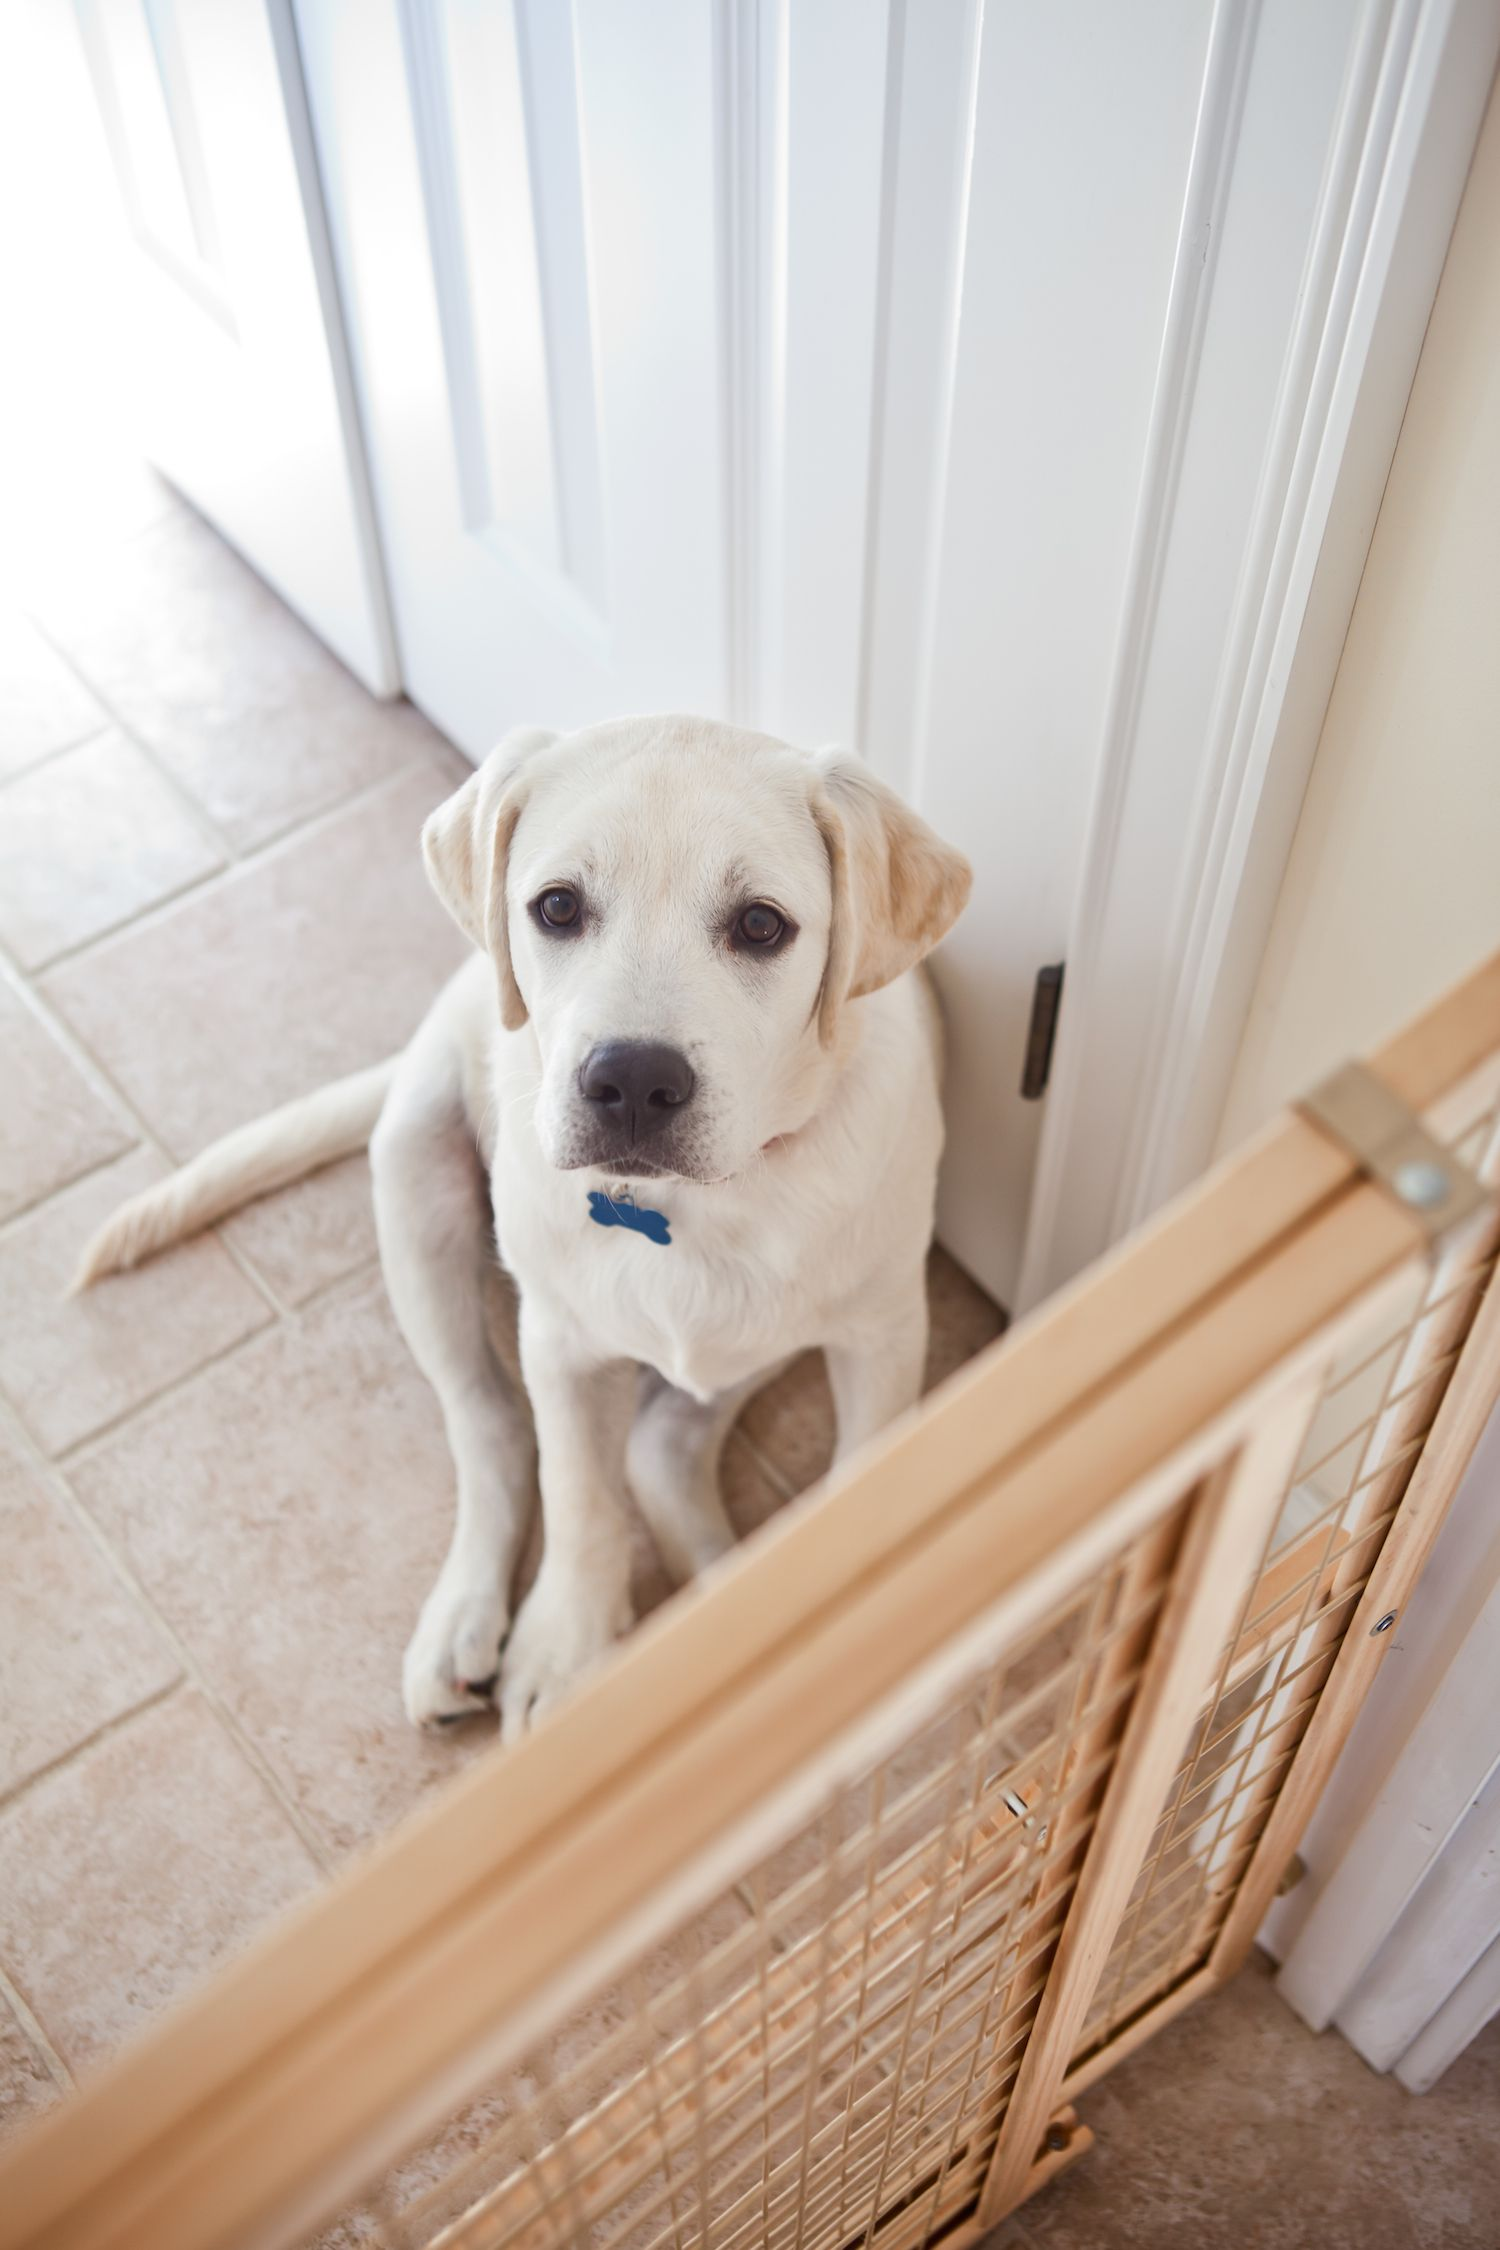 Repurpose that safety gate tokeep your overly excitable dog from jumping on Mom as she grabs a snack.